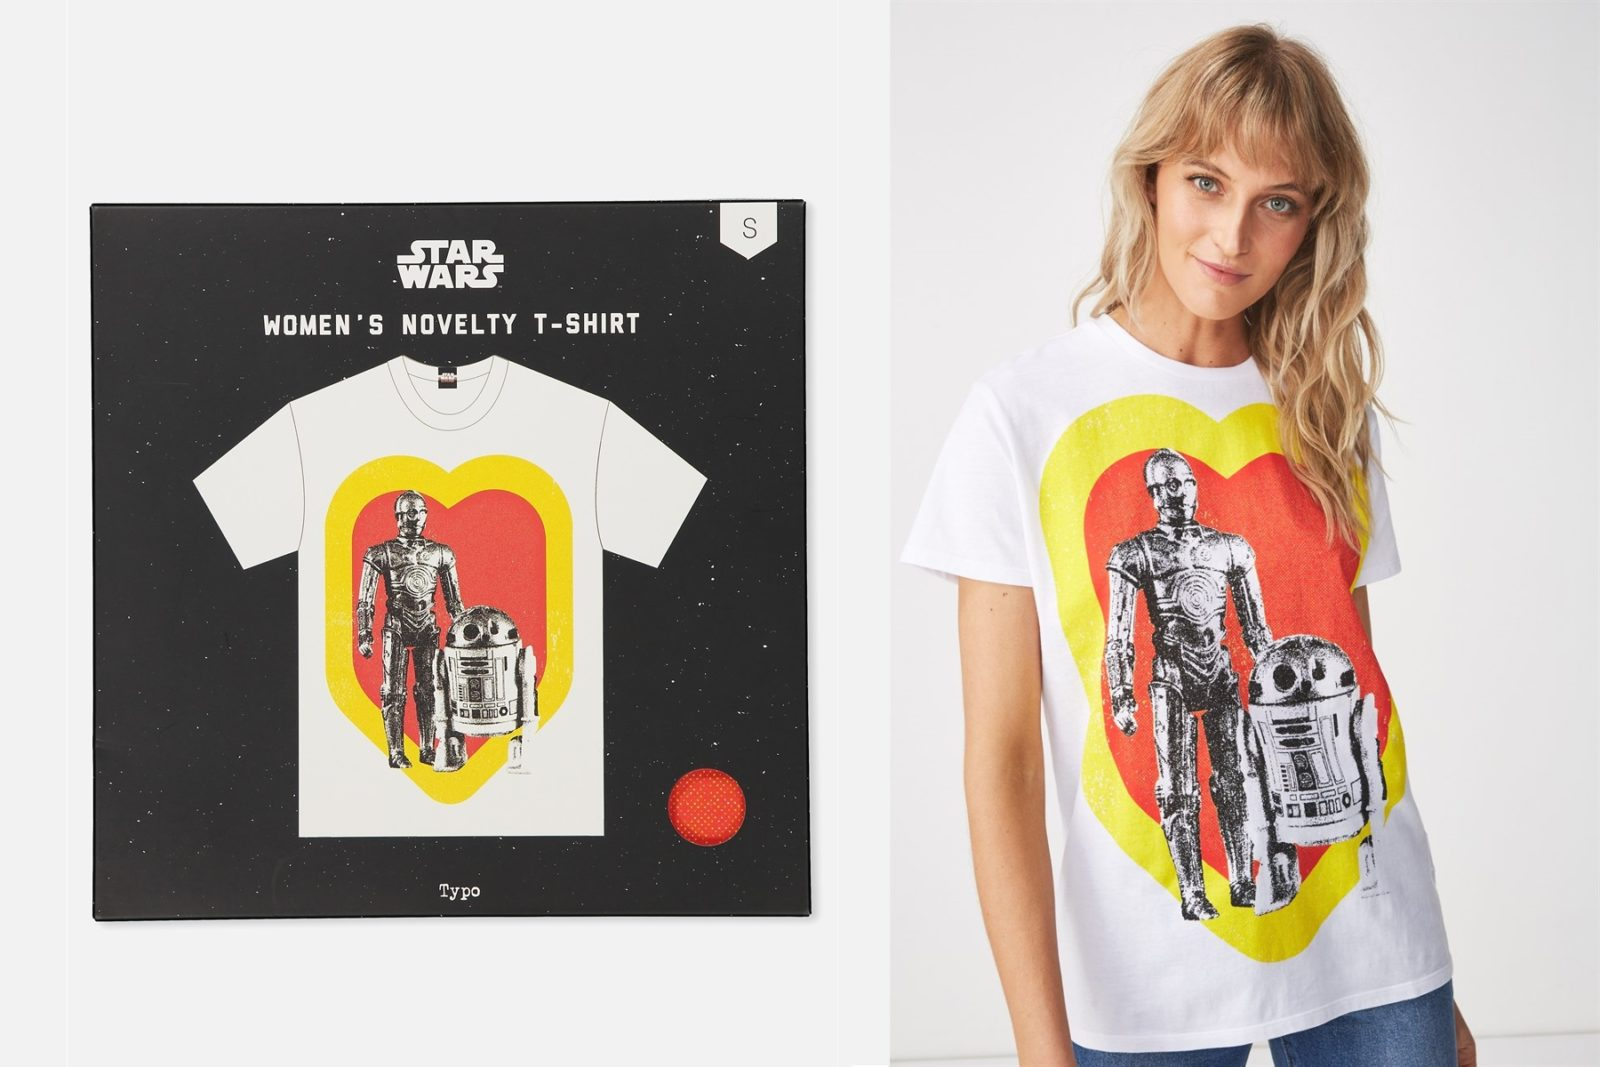 Women's C-3PO & R2-D2 Print T-Shirt at Typo